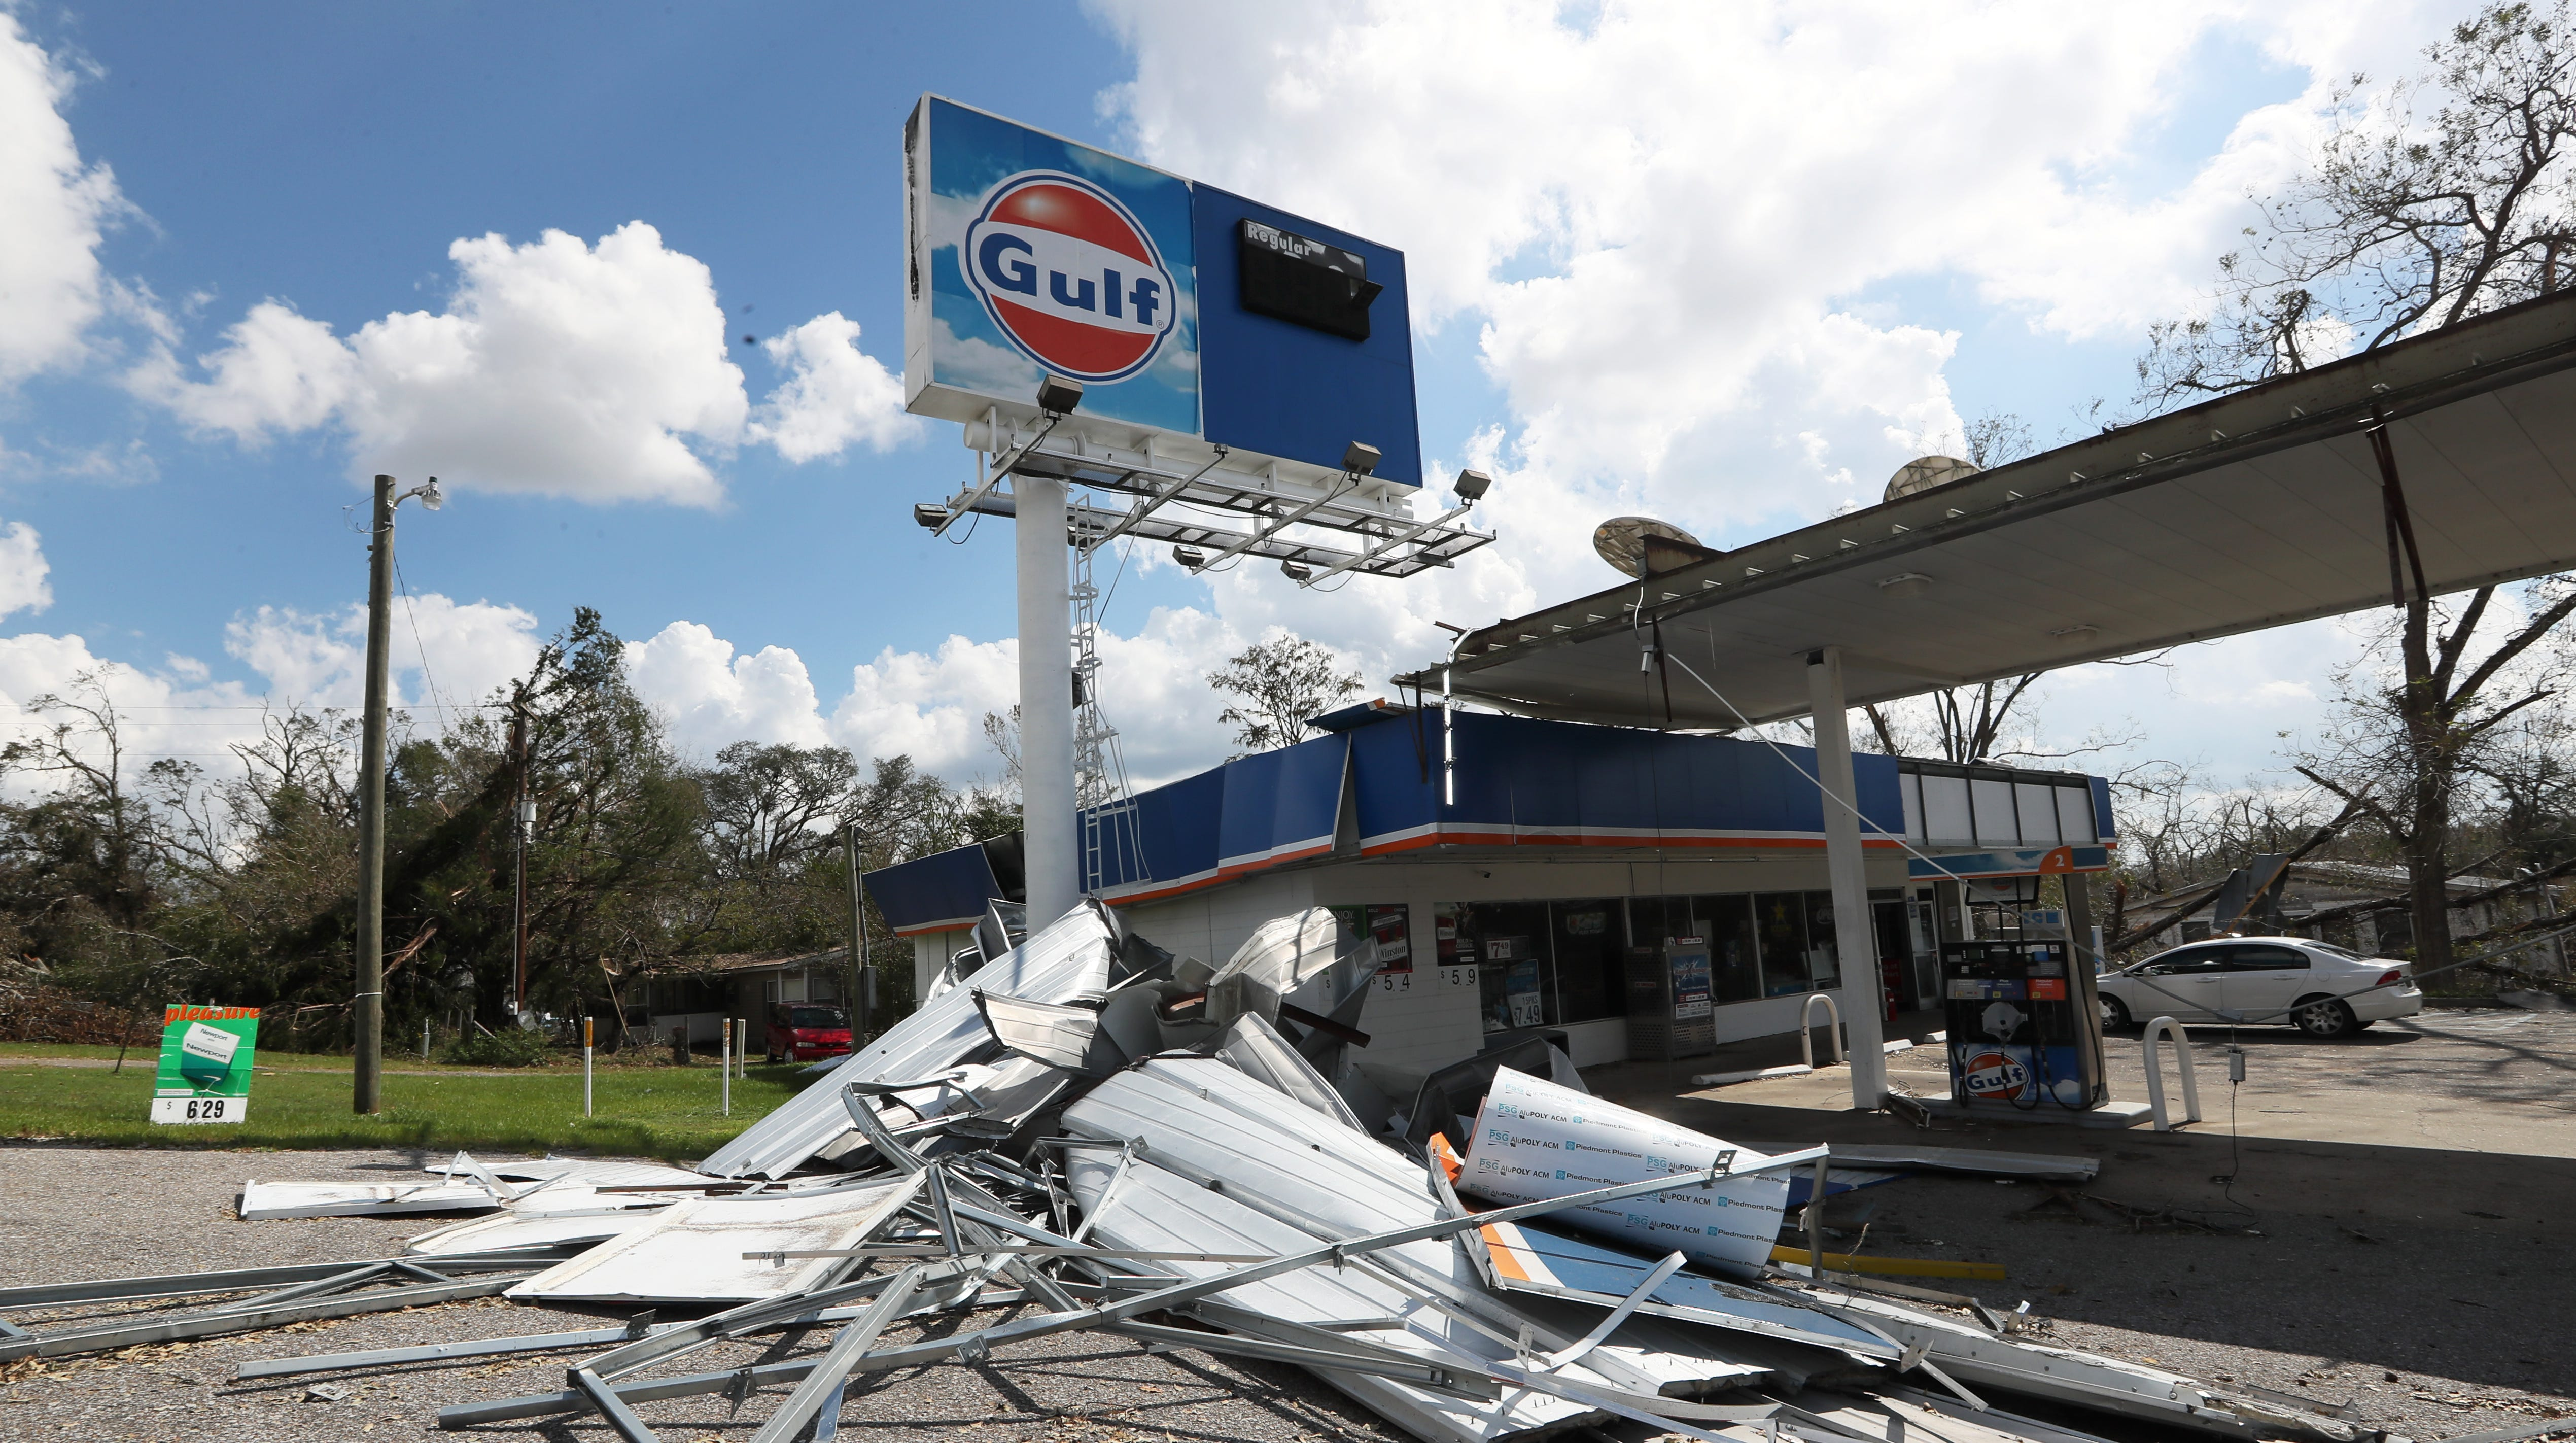 The roof of a gas station's awning is left in ruin along the roadside of Highway 90 in Sneads, Fla. after Hurricane Michael swept through town.